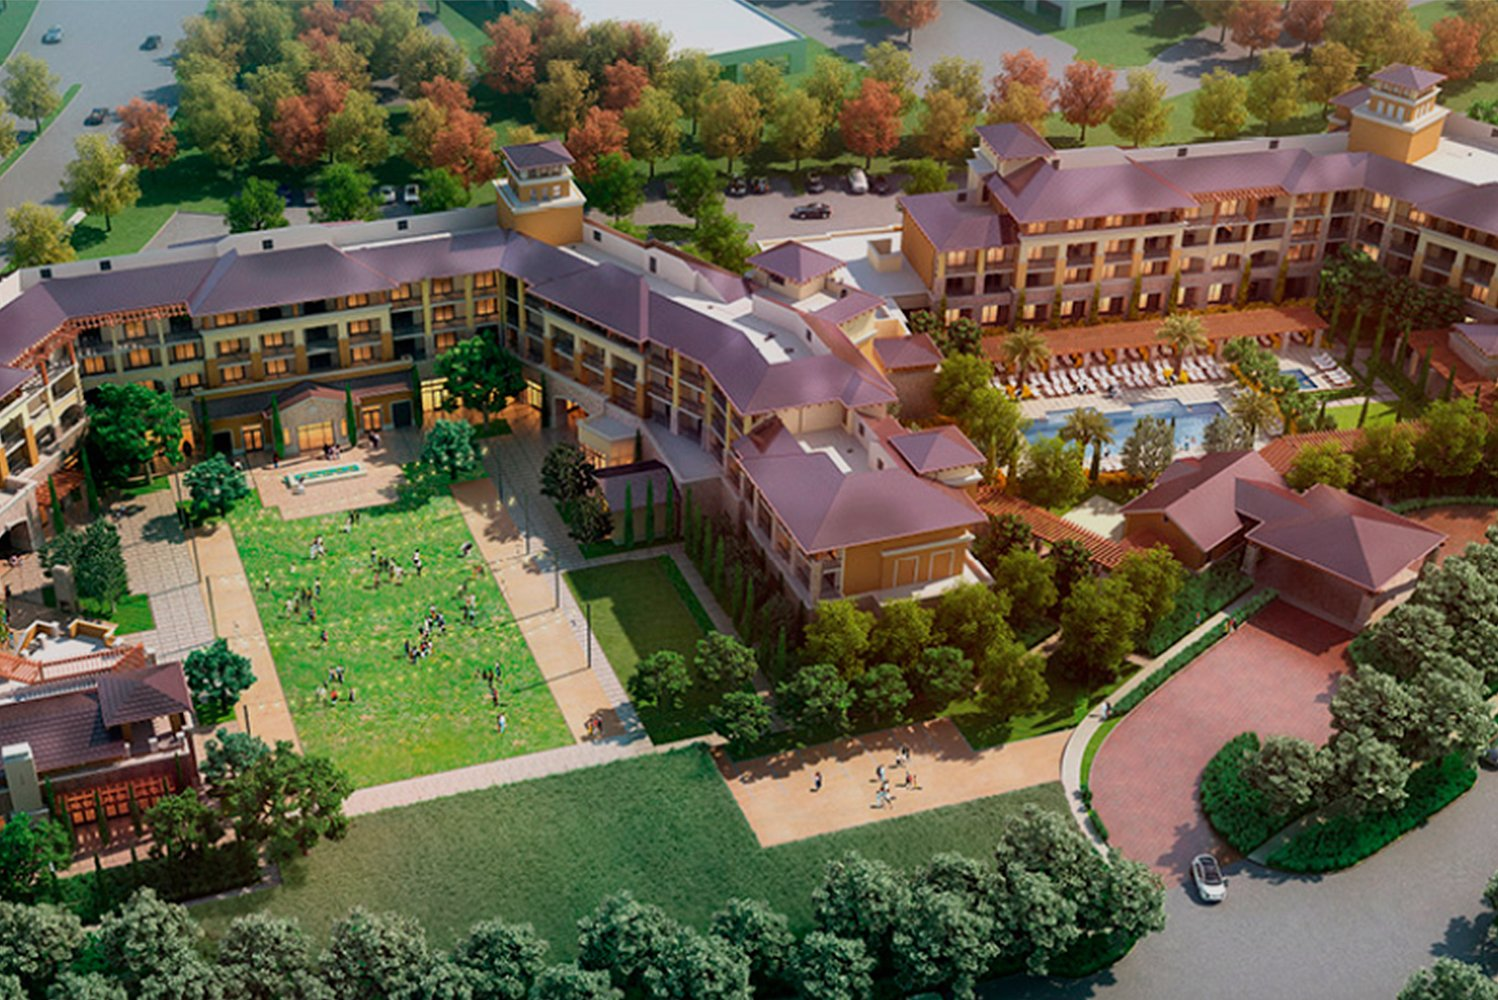 The Vista Collina Resort from Pacific Hospitality Group is scheduled to open in Napa Valley, California this July.